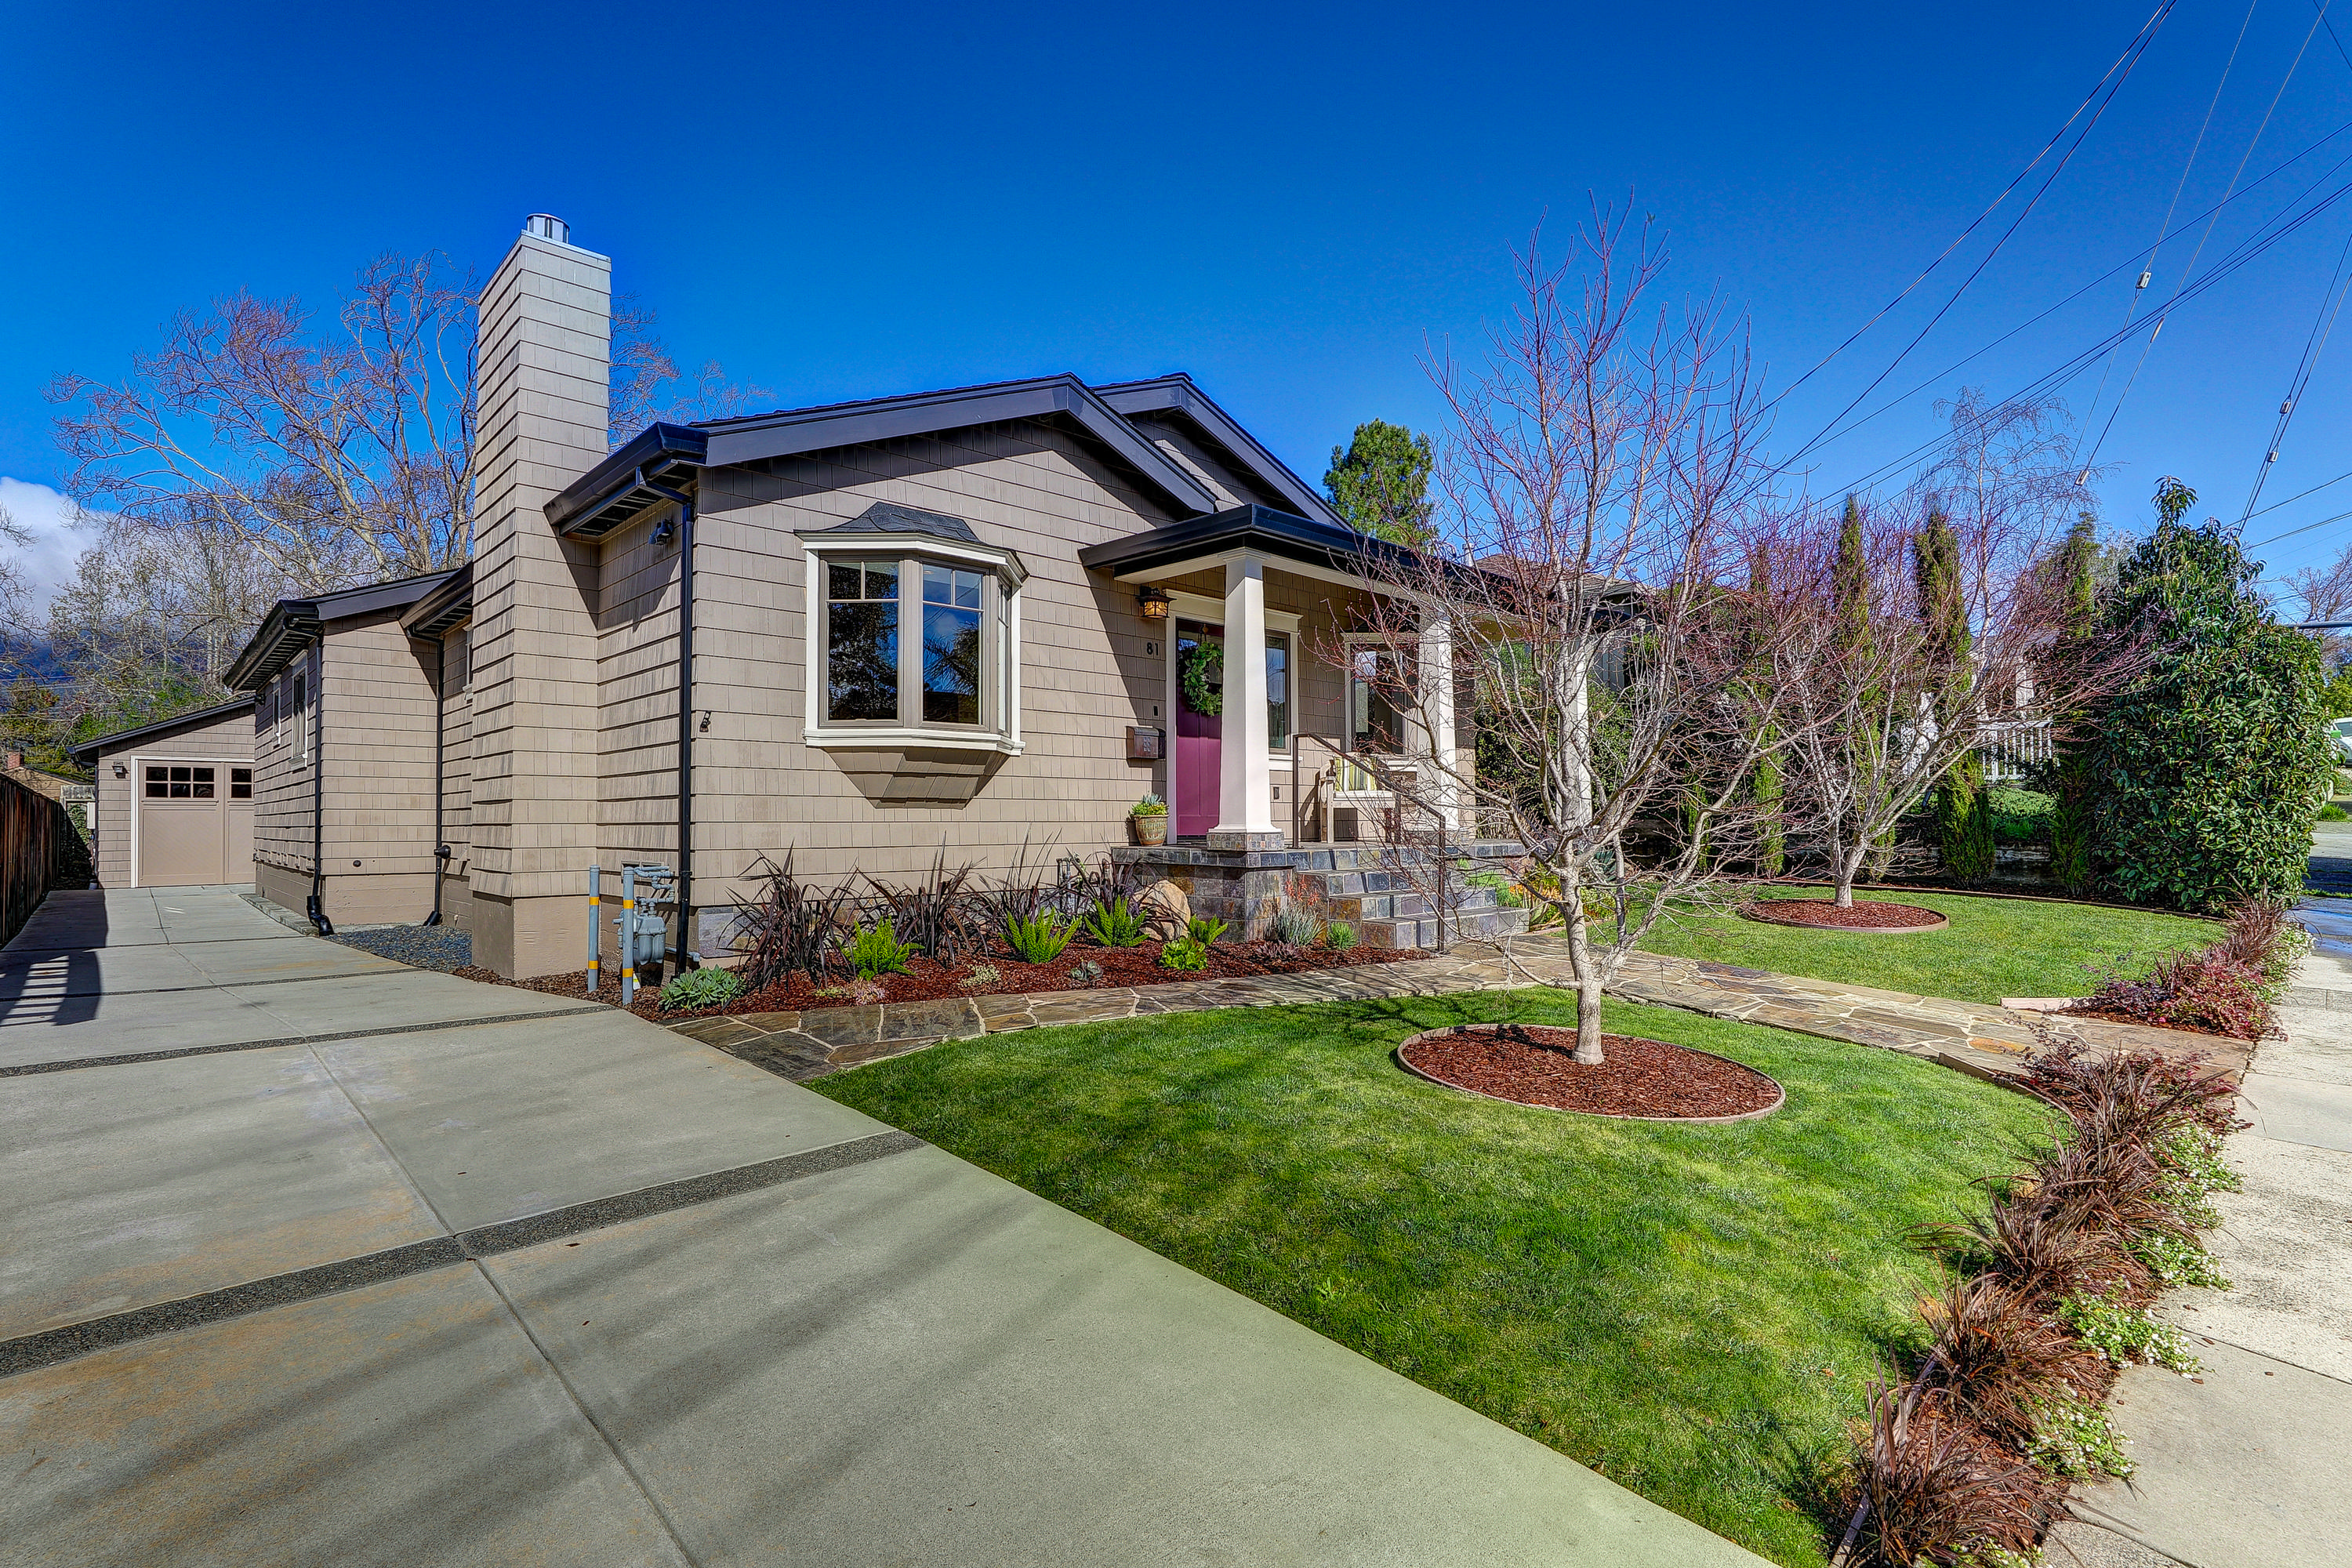 Single Family Home for Sale at Sought-After Sycamore Park 81 Ryan Avenue Mill Valley, California 94941 United States